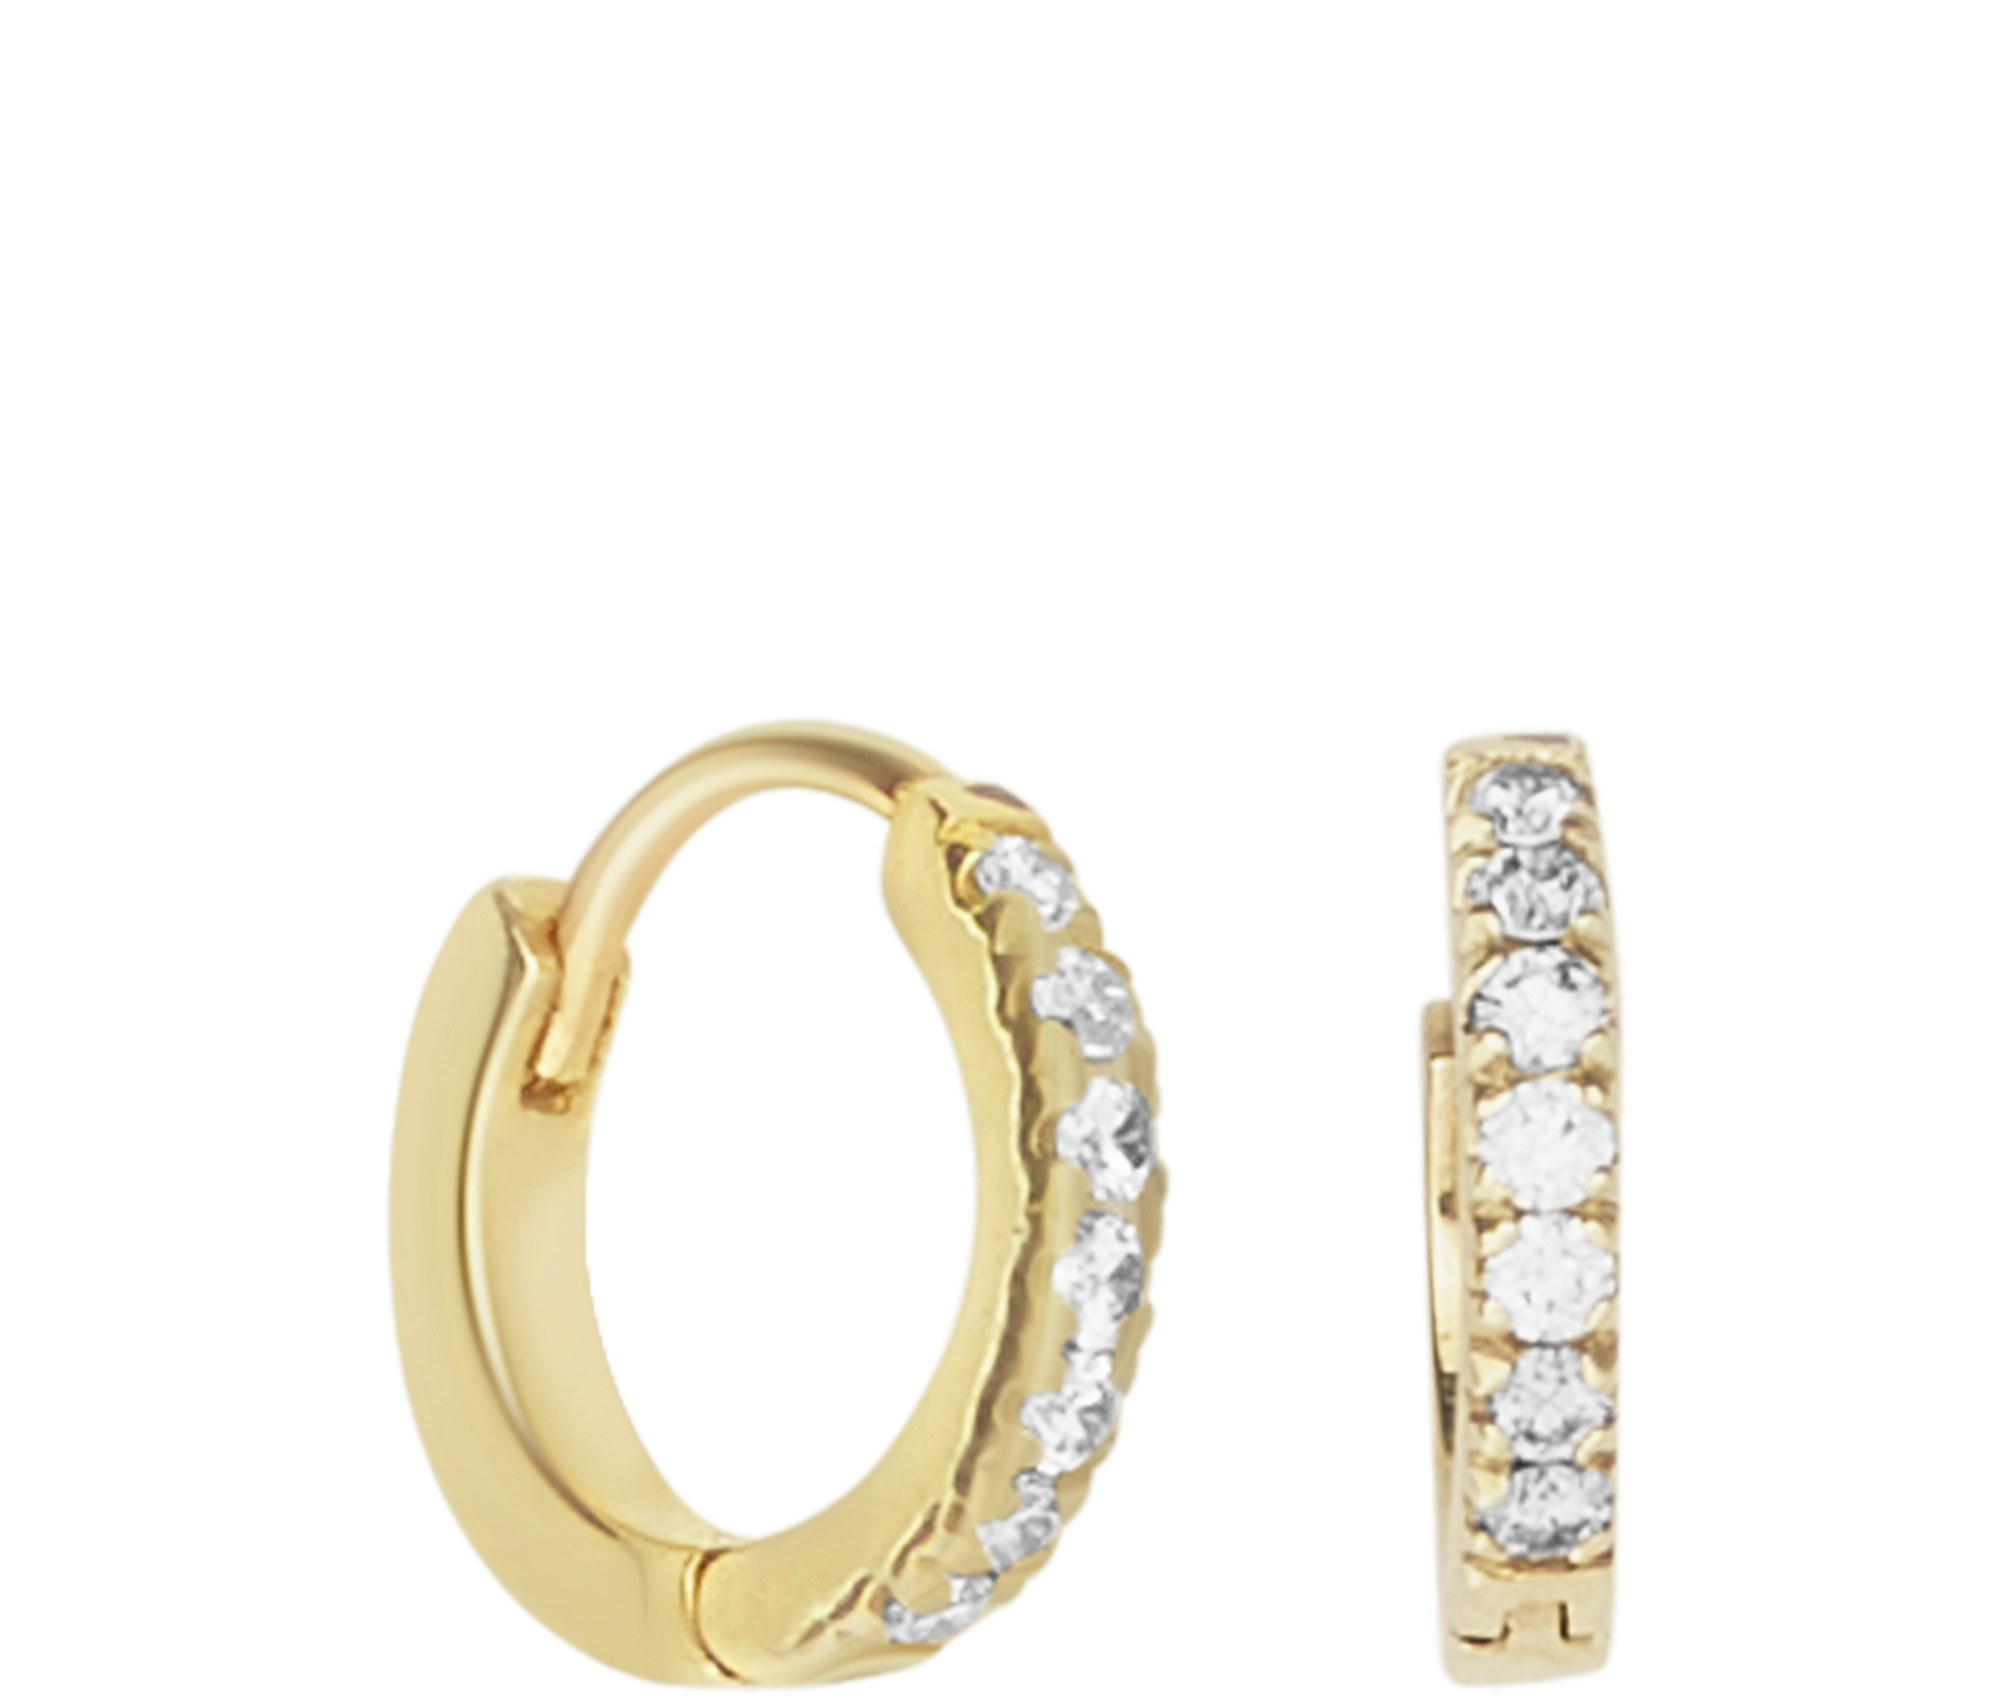 products/diamond-huggies-jewelry-16618179330148.png